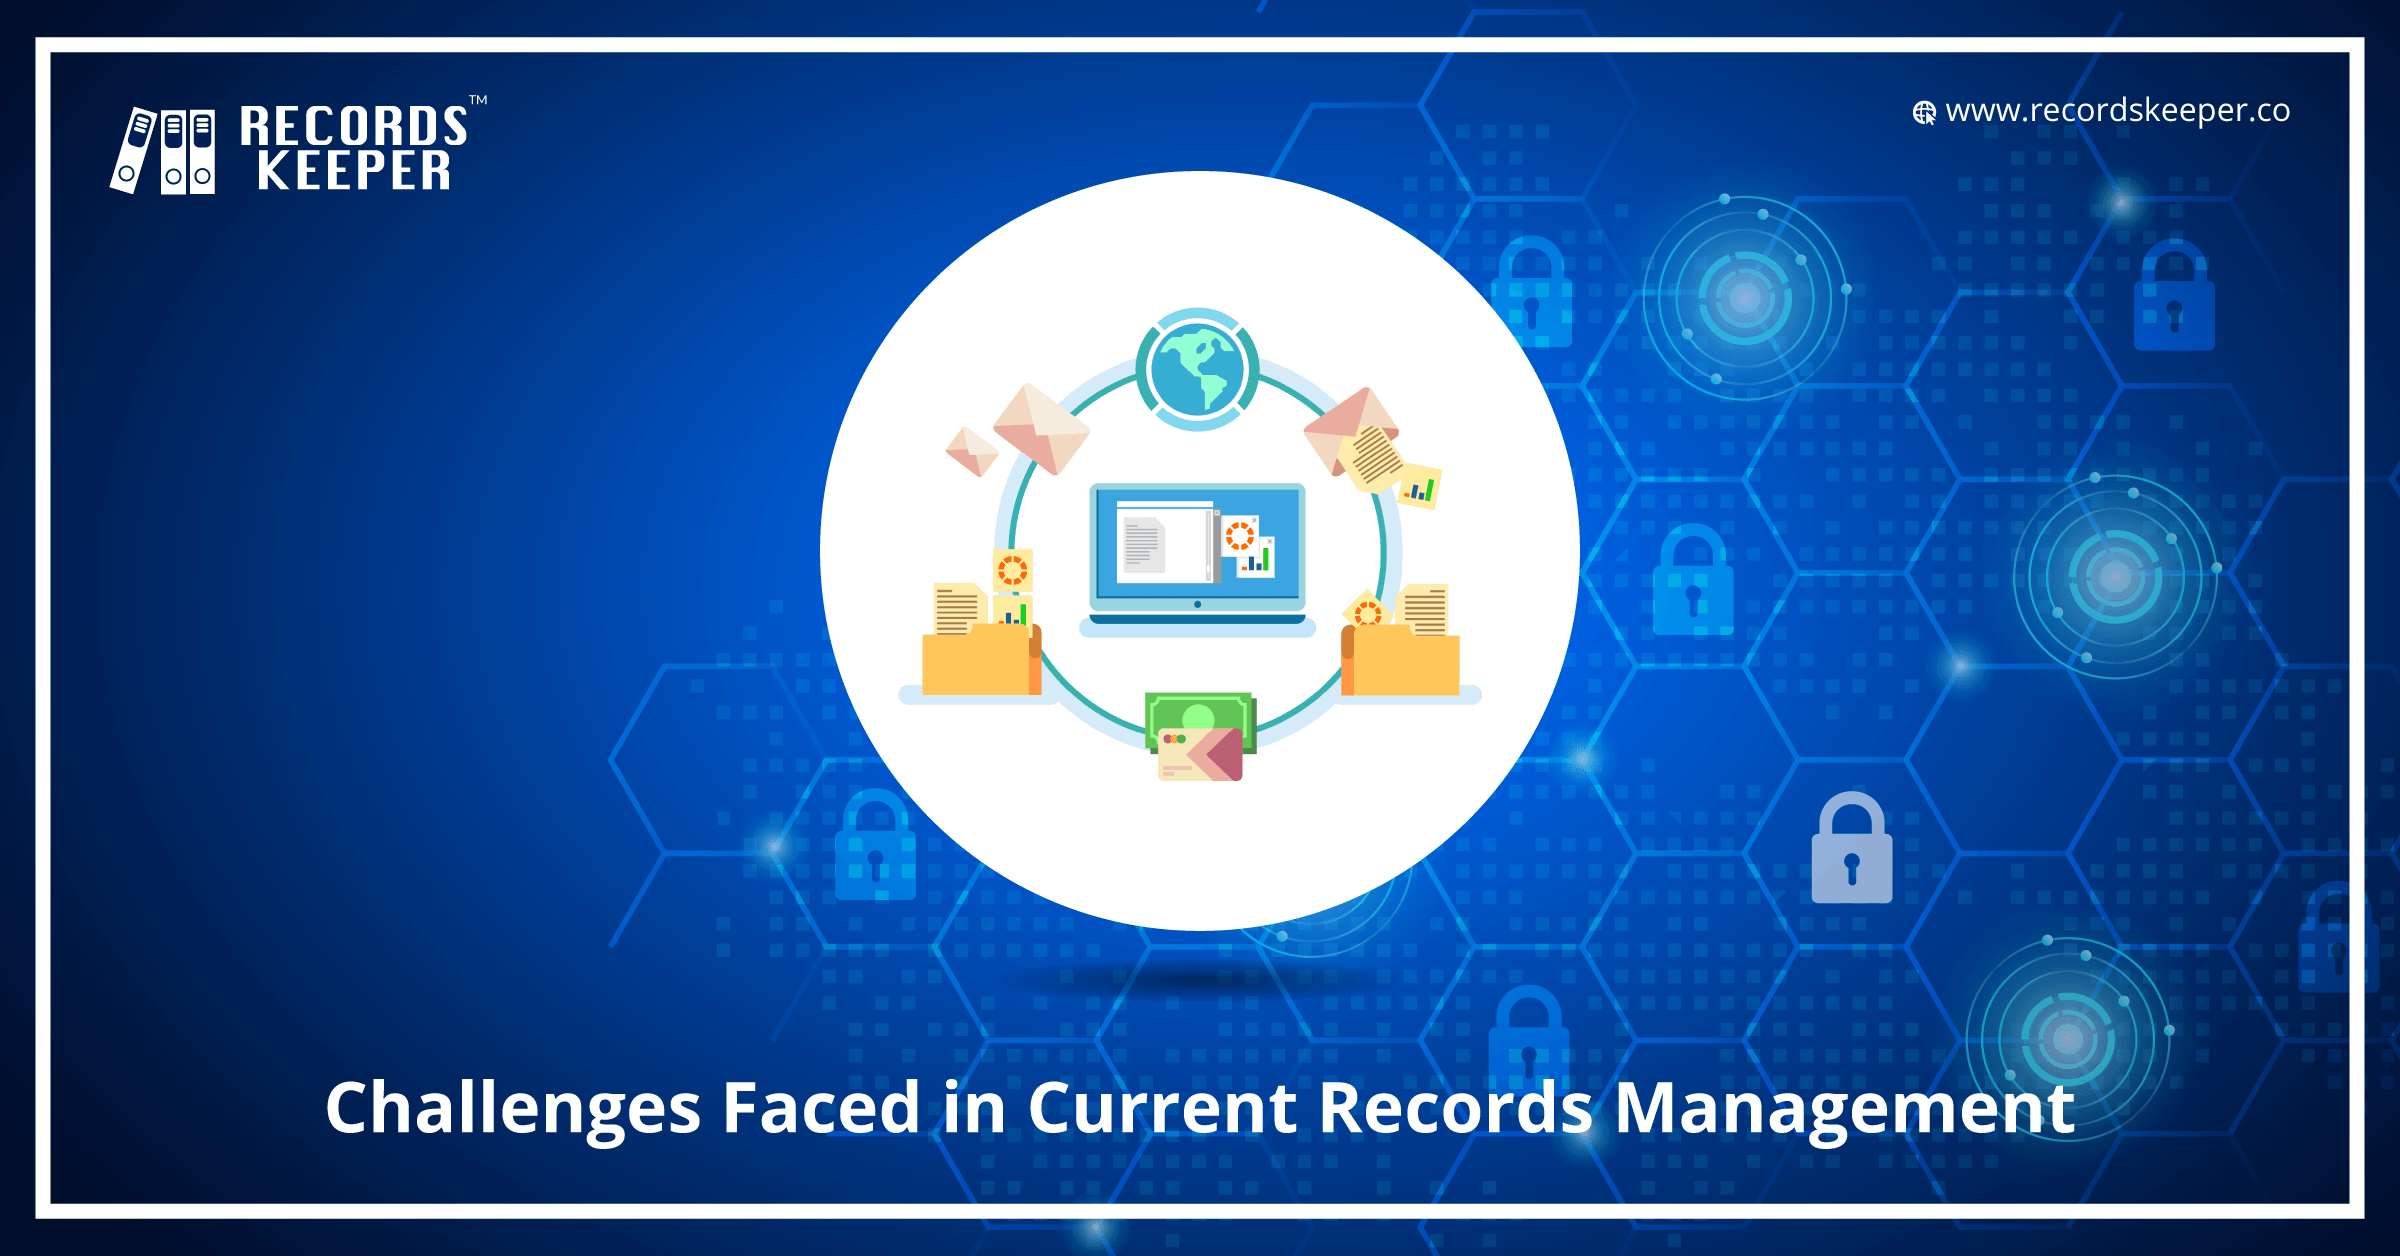 Challenges Faced By Current Record Management